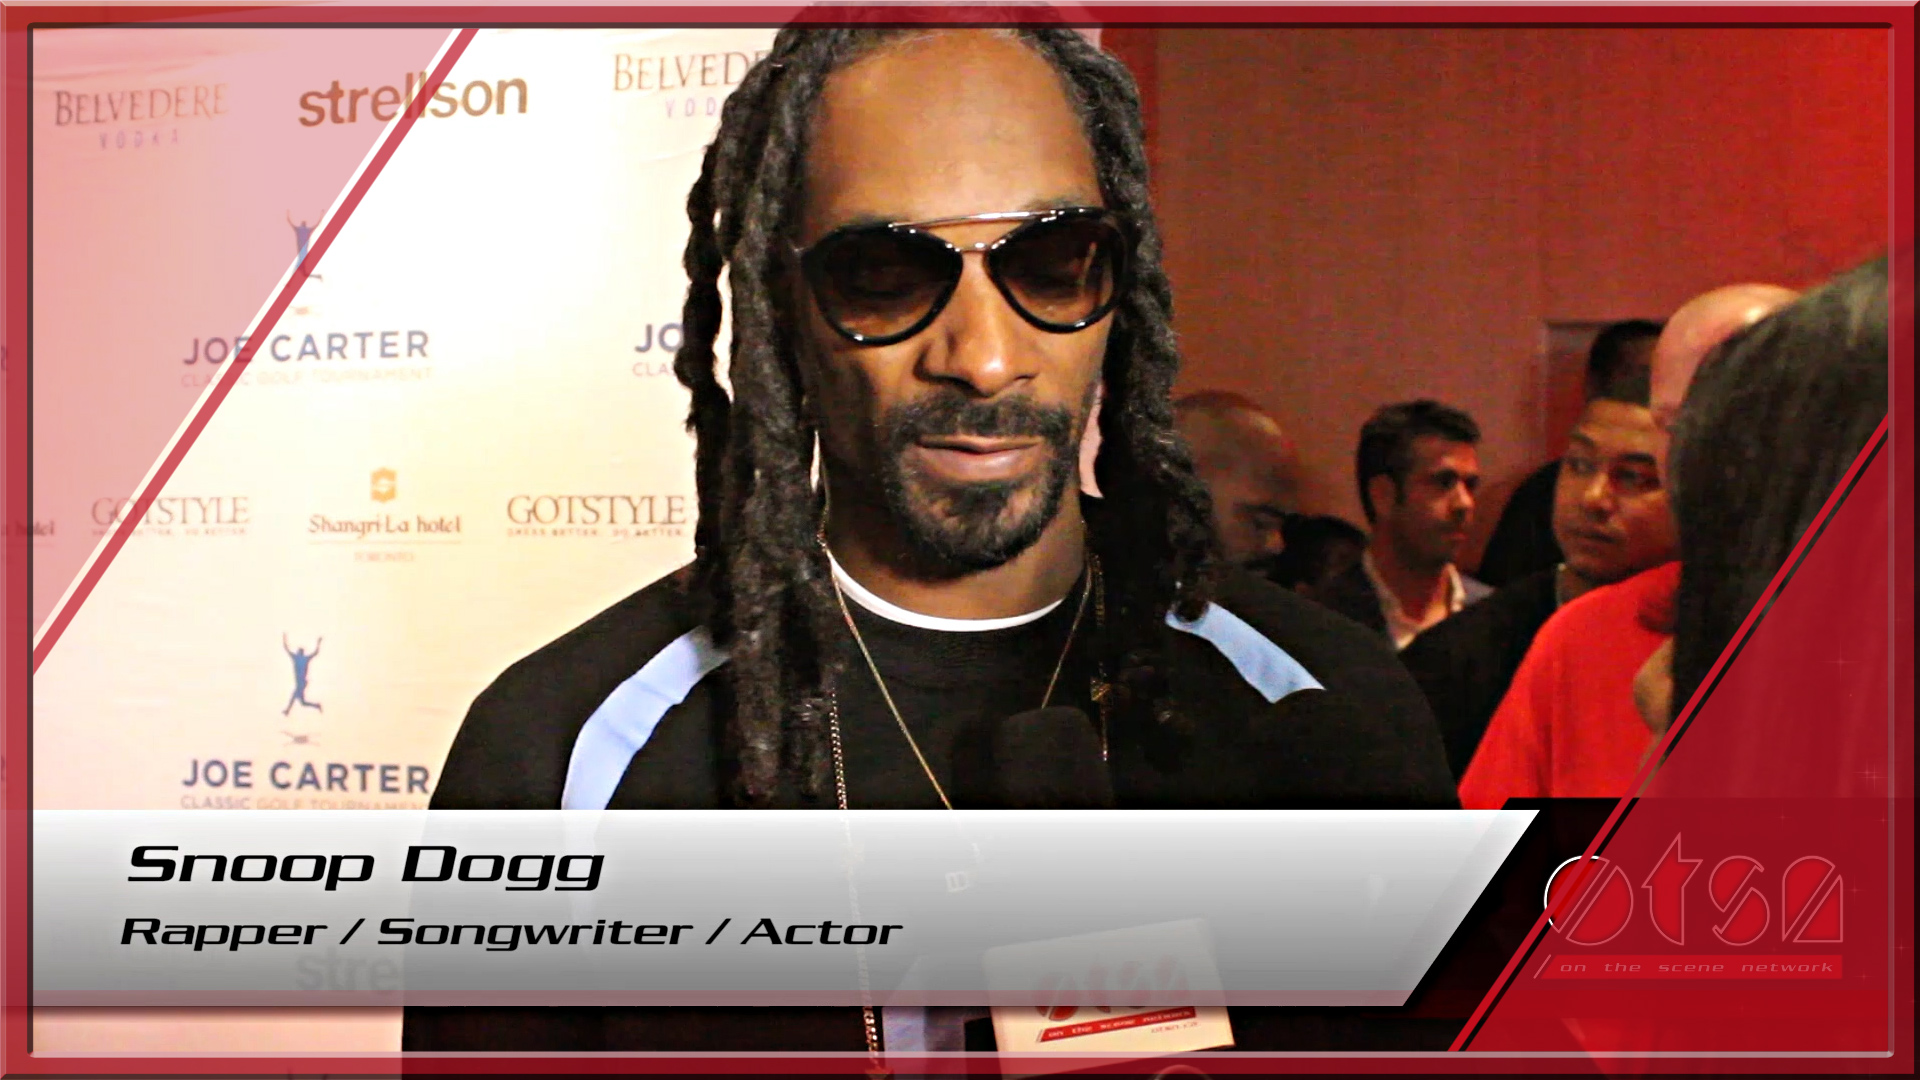 Joe Carter Classic 2015 afterparty with Snoop Dogg